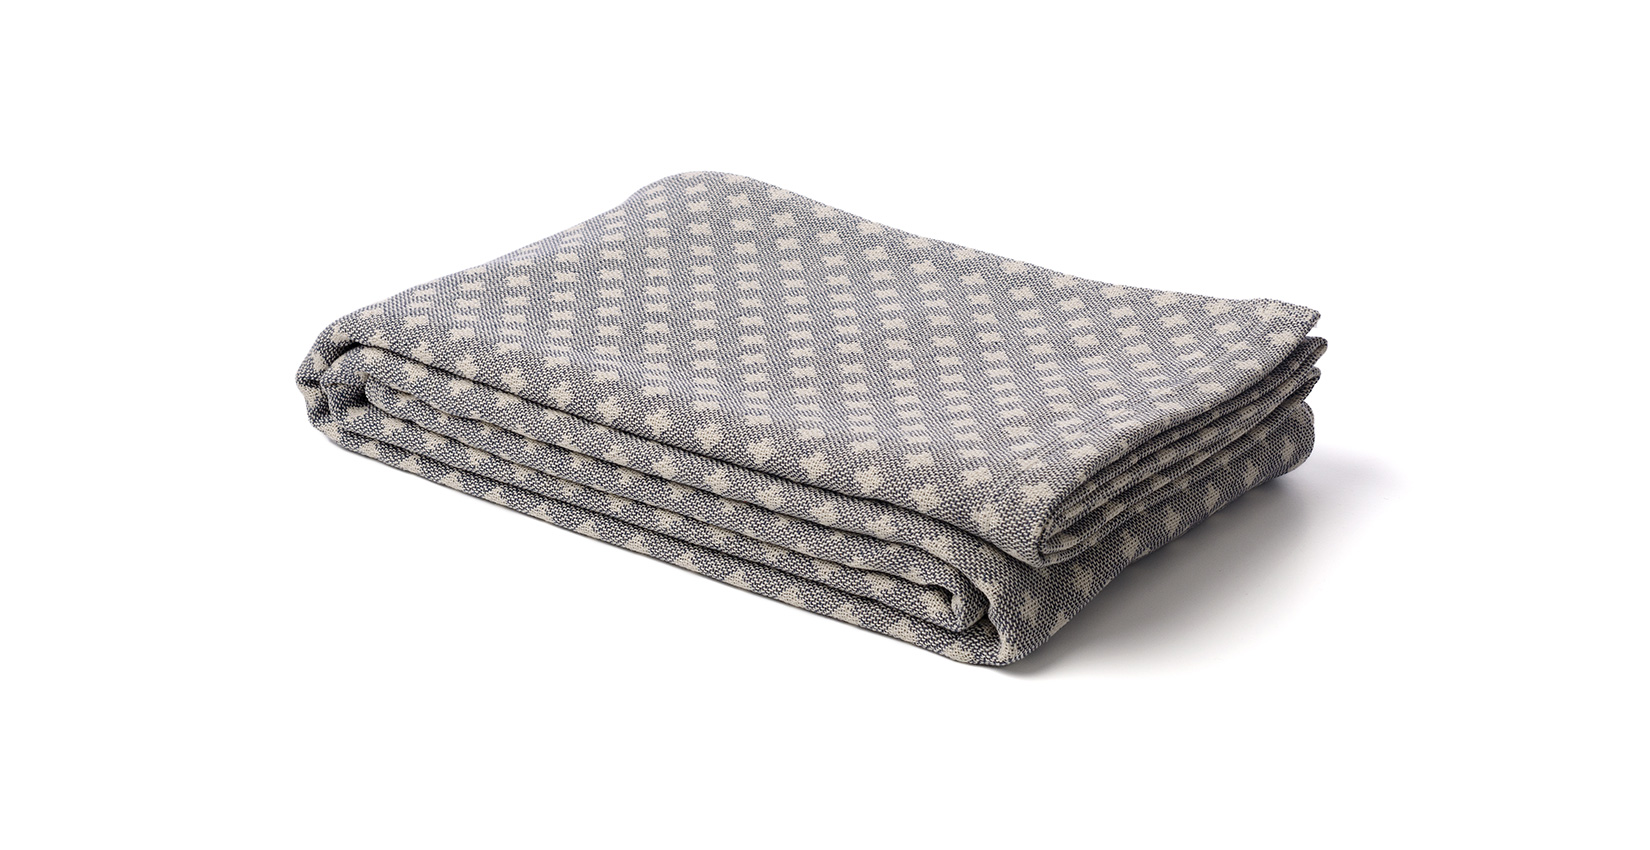 Bedspreads, colchas - Lys